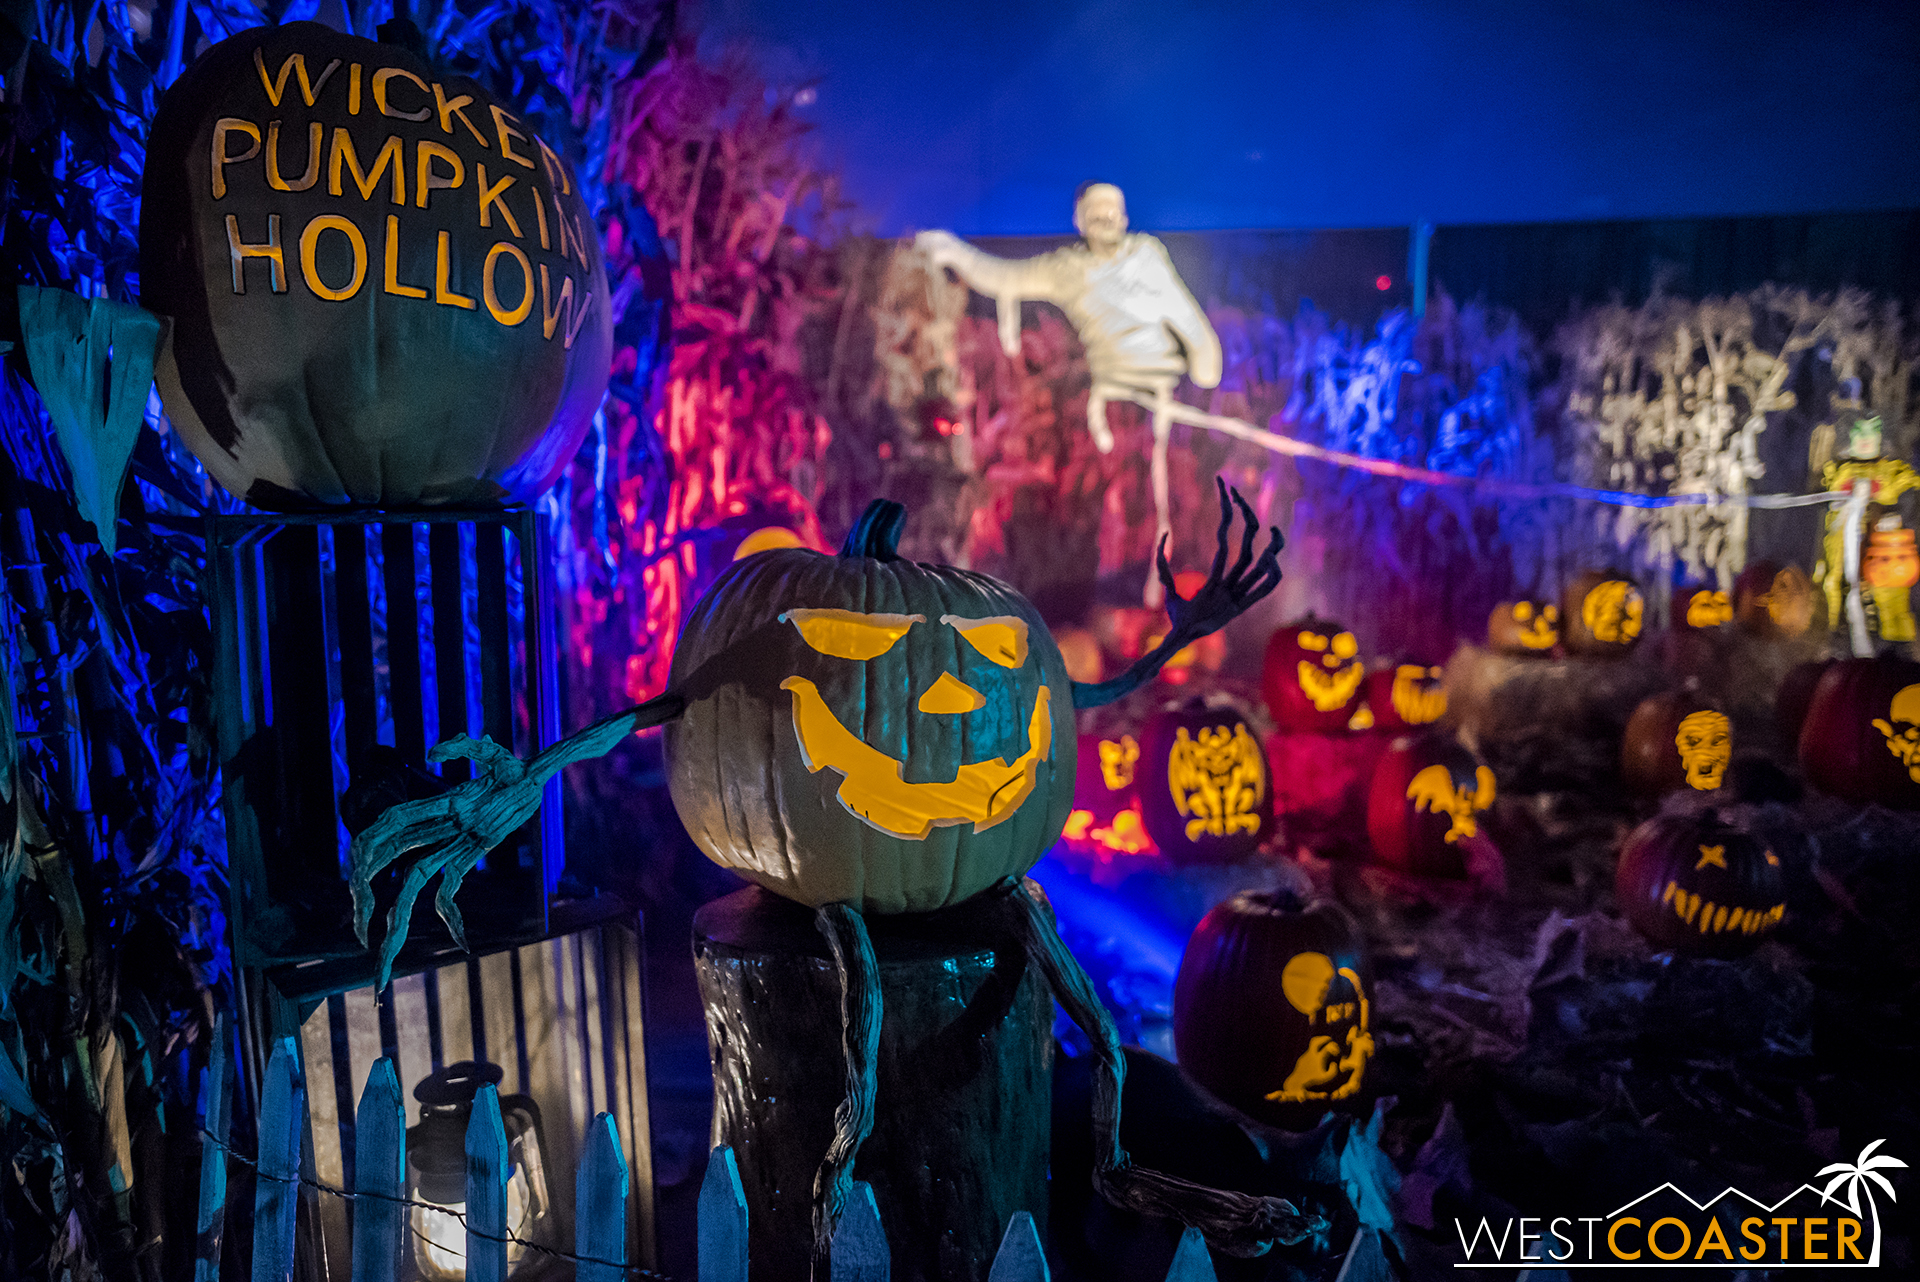 One of the most photogenic haunted yard displays out there is back for another year.